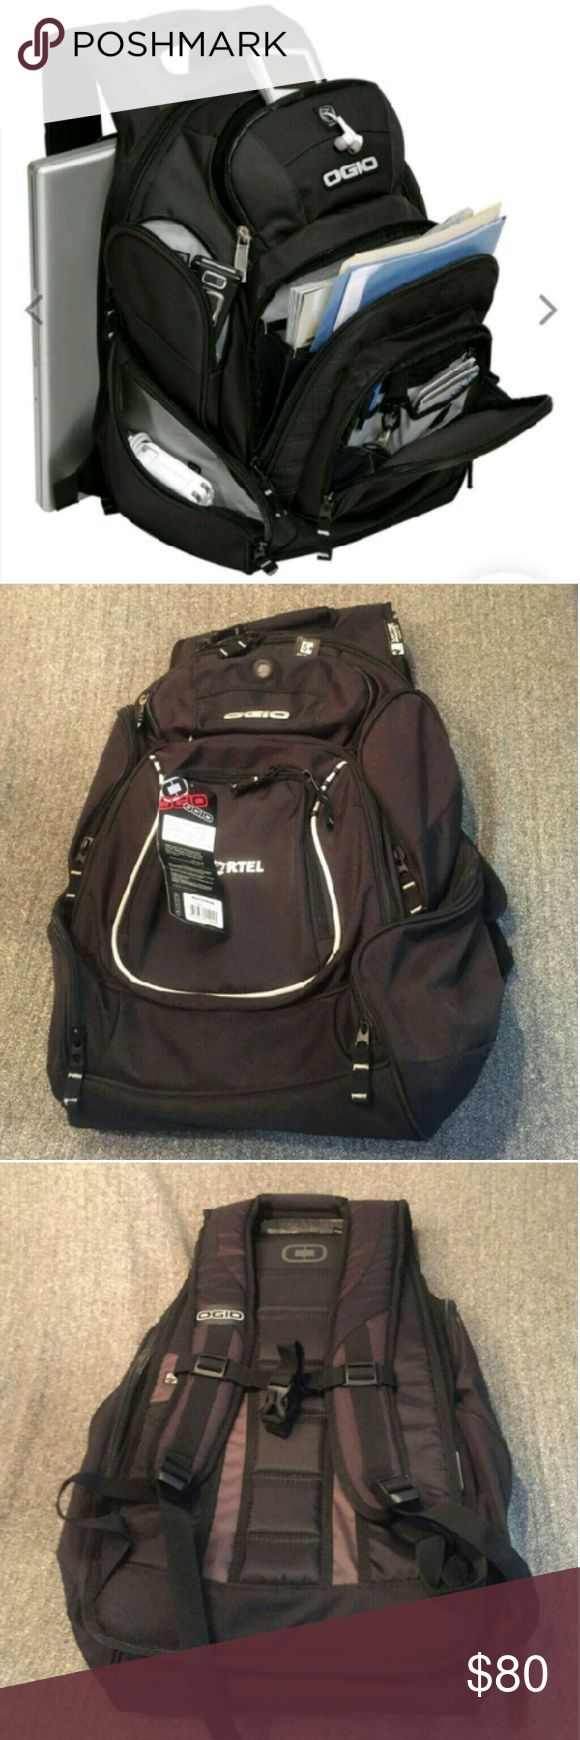 "OGIO ""MASTERMIND"" BackPack NWT this back pack is a virtual storage room with backpack straps and is outfitted with no less than 10 Pockets including dedicated storage for laptops vertical files Tech accessories plane tickets and audio gear. OGIO Bags Backpacks"